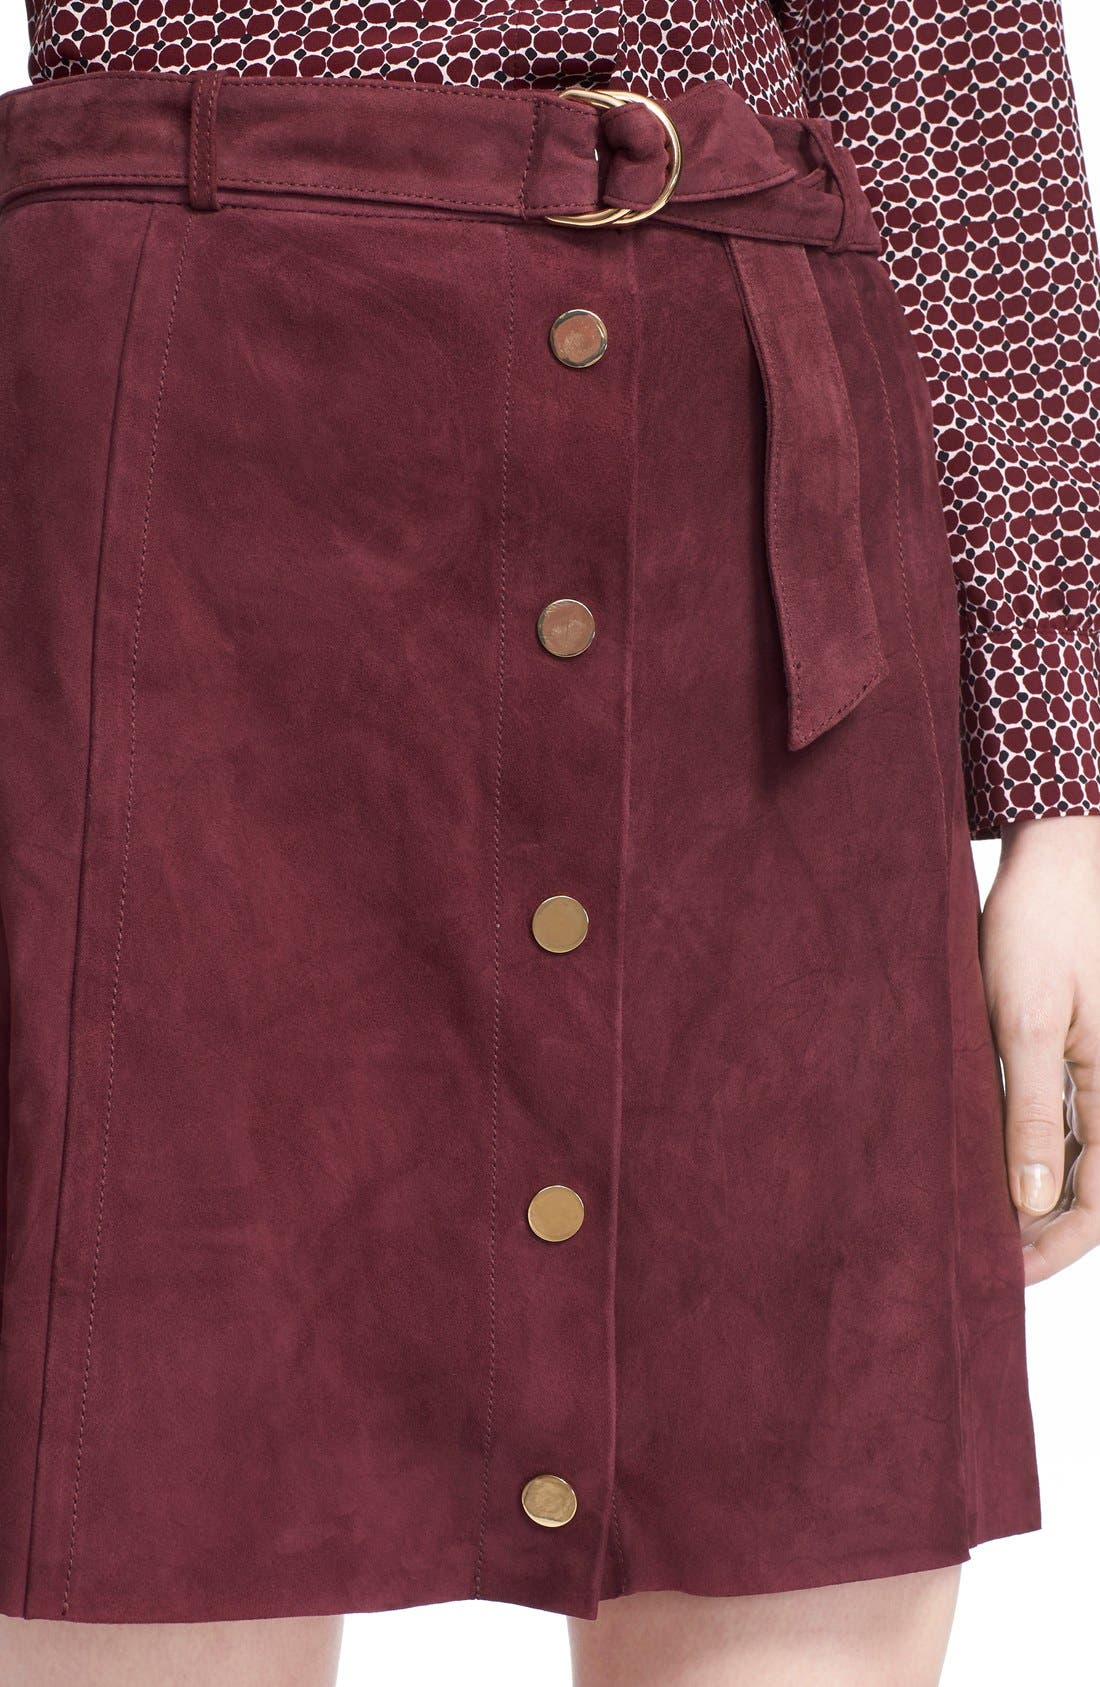 belted suede a-line skirt,                             Alternate thumbnail 4, color,                             Midnight Wine